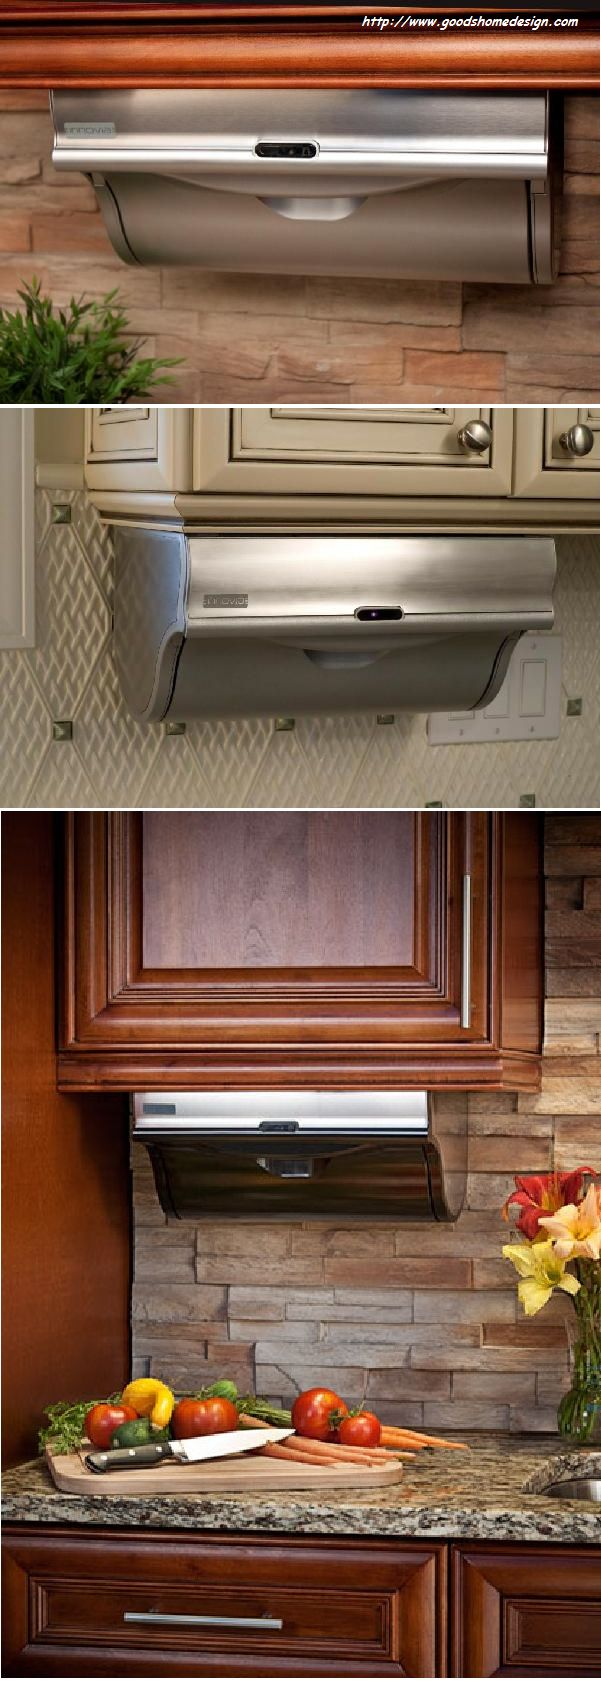 Automatic paper towel dispenser for home - Practical Kitchen Idea Automatic Paper Towel Dispenser Video